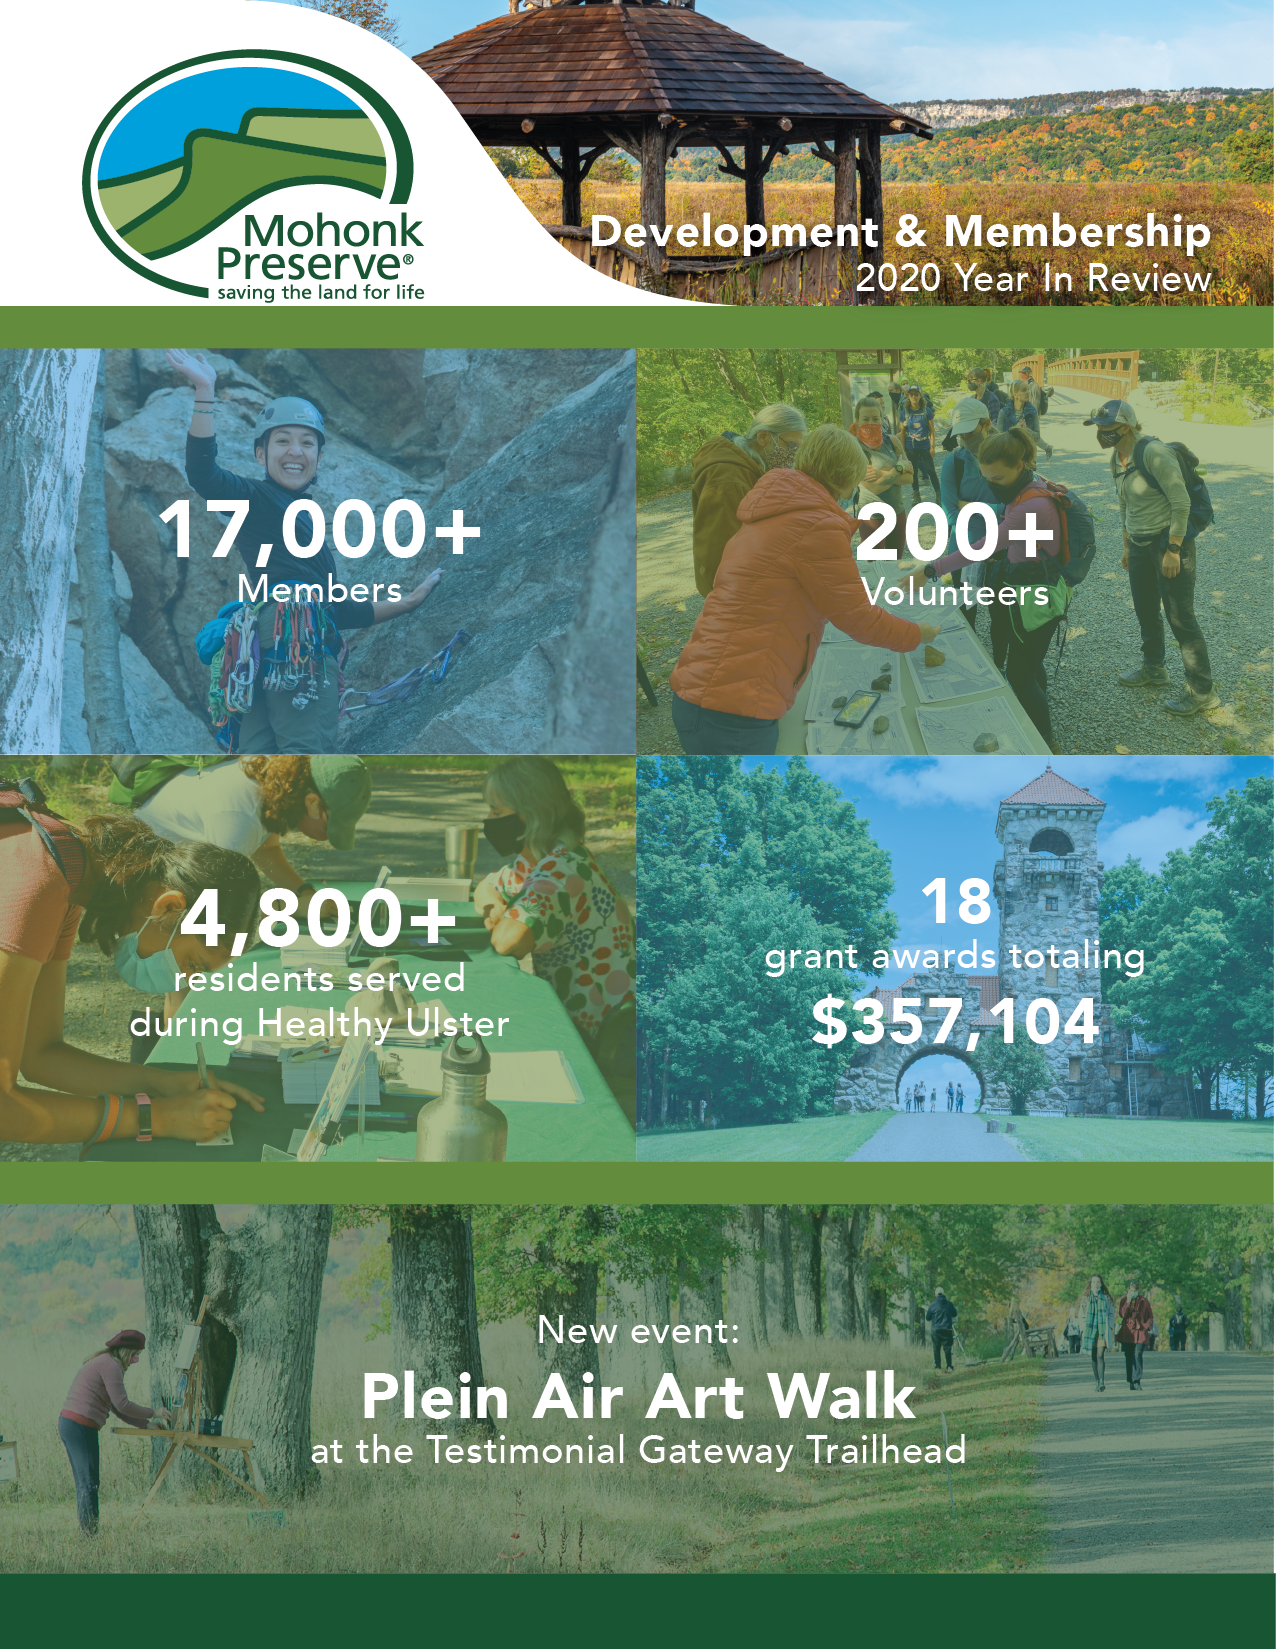 Development and Membership: 2020 Year In Review; 17,000+ Members; 200+ Volunteers; 4,800+ residents served during Healthy Ulster; New event - Plein Air Art Walk at the Testimonial Gateway Tower